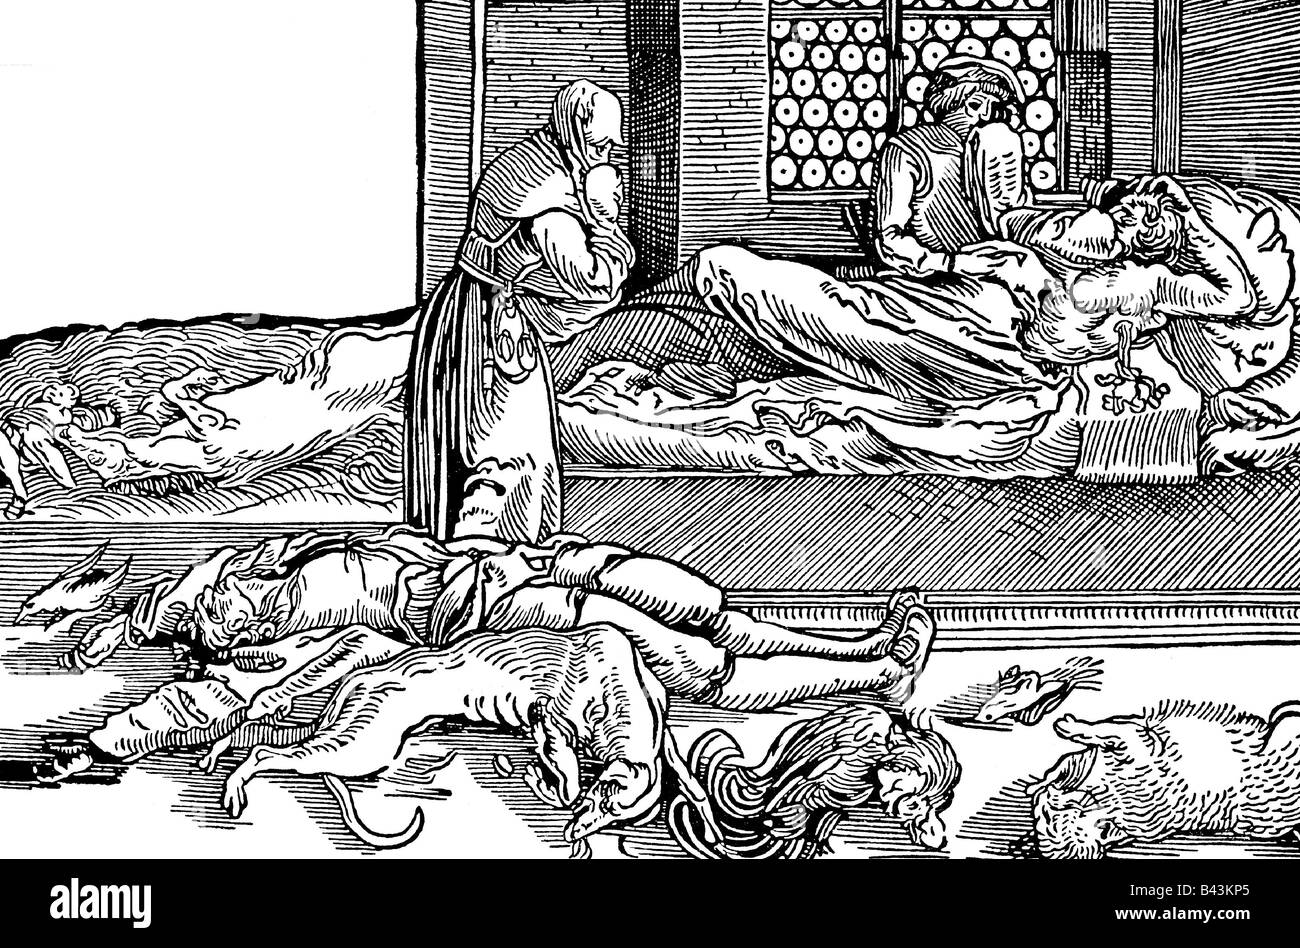 medicine, epidemics, plague, plague house, middle ages, woodcut by Hans Weidlitz the younger, Germany, 16th century, - Stock Image